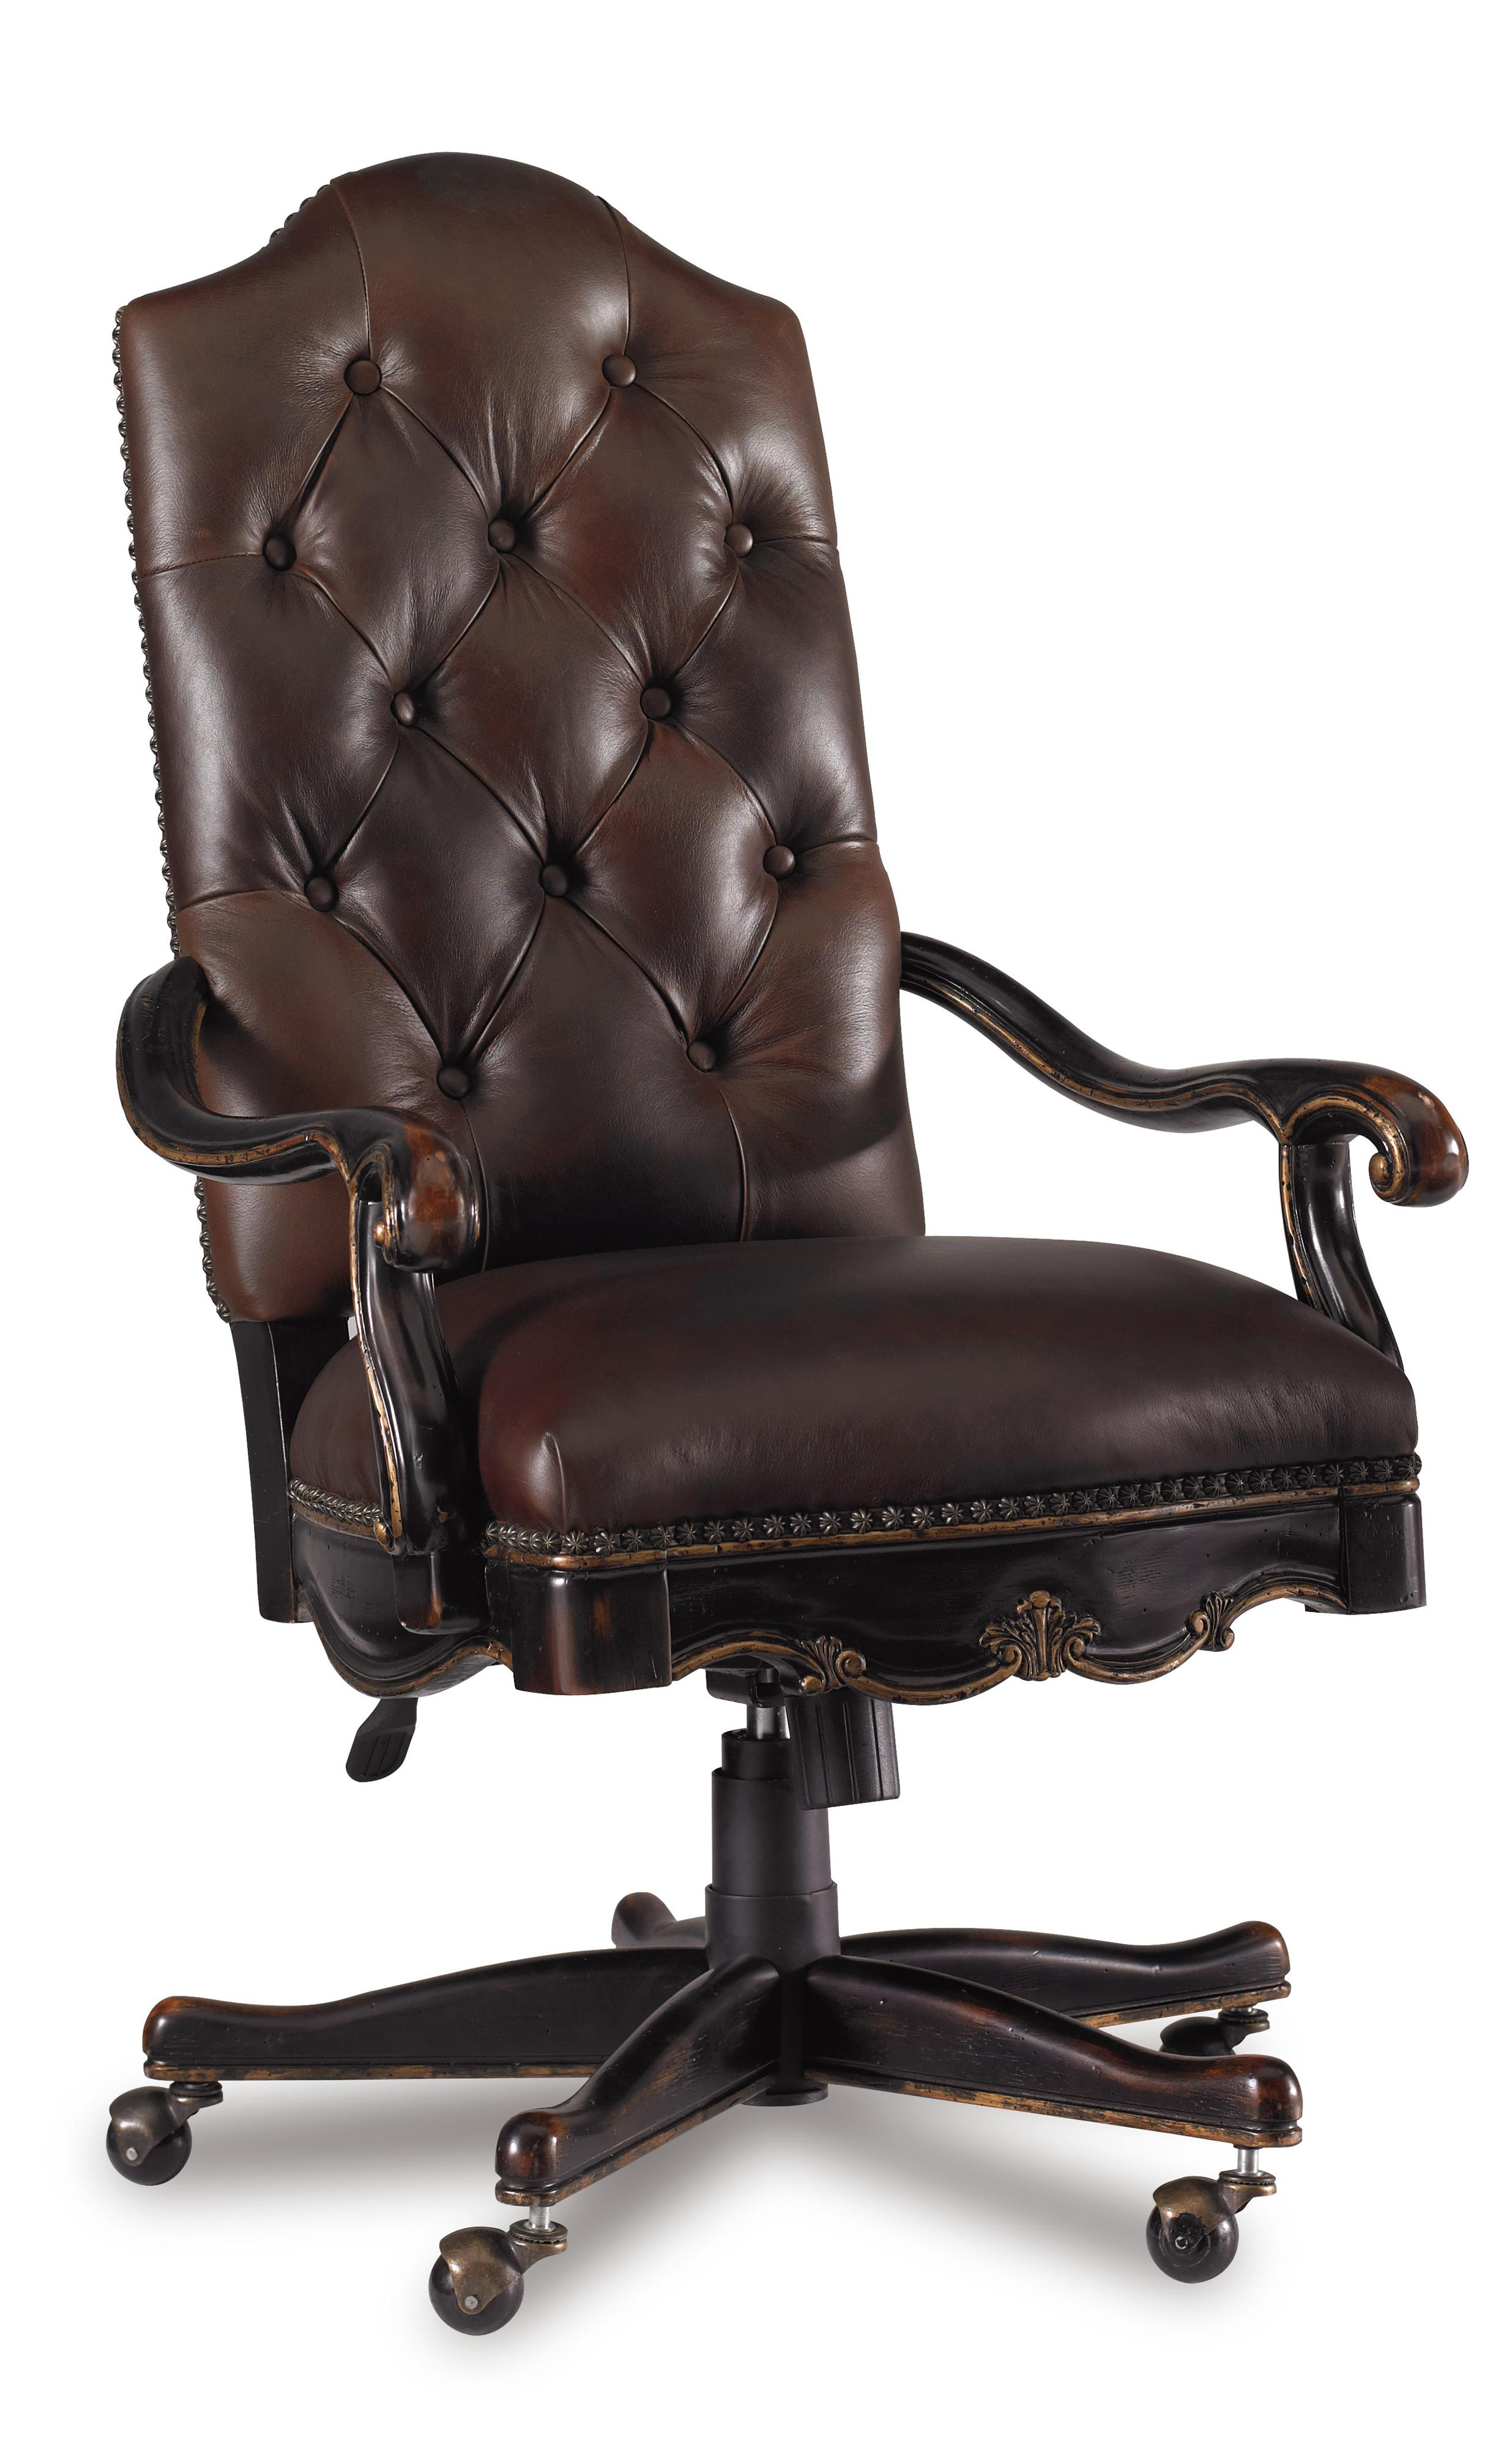 Red Leather Swivel Chair Grandover Tufted Leather Executive Office Chair With Tilt Swivel And Pneumatic Seat Height Adjustment By Hooker Furniture At Belfort Furniture